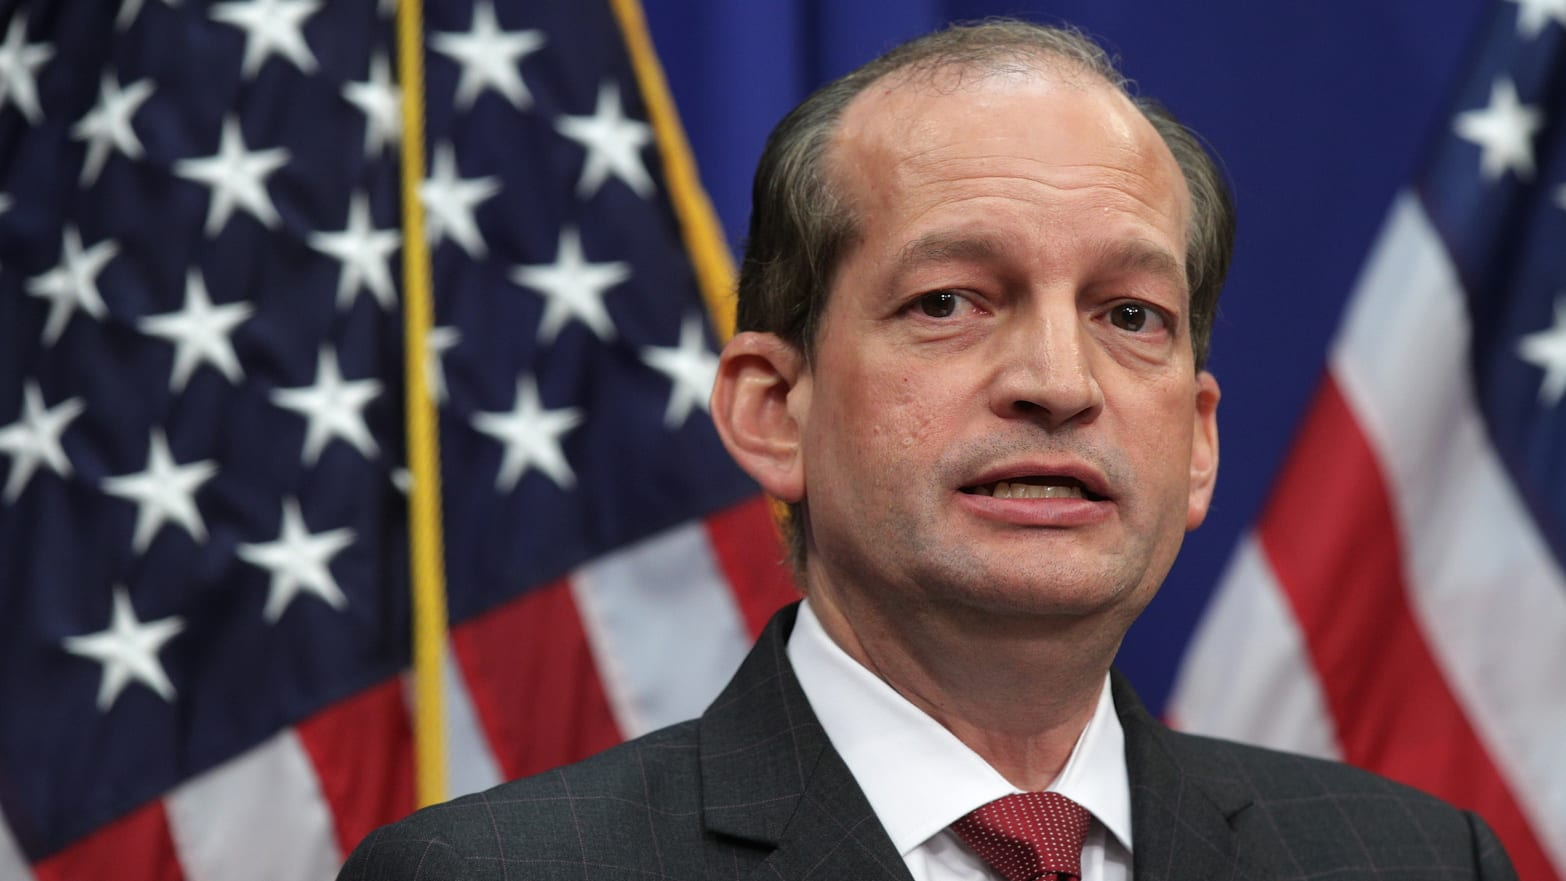 Alex Acosta: Trump Labor Secretary Exits Over Jeffrey Epstein Scandal, Says It's Not 'Fair' to Be 'the Focus'